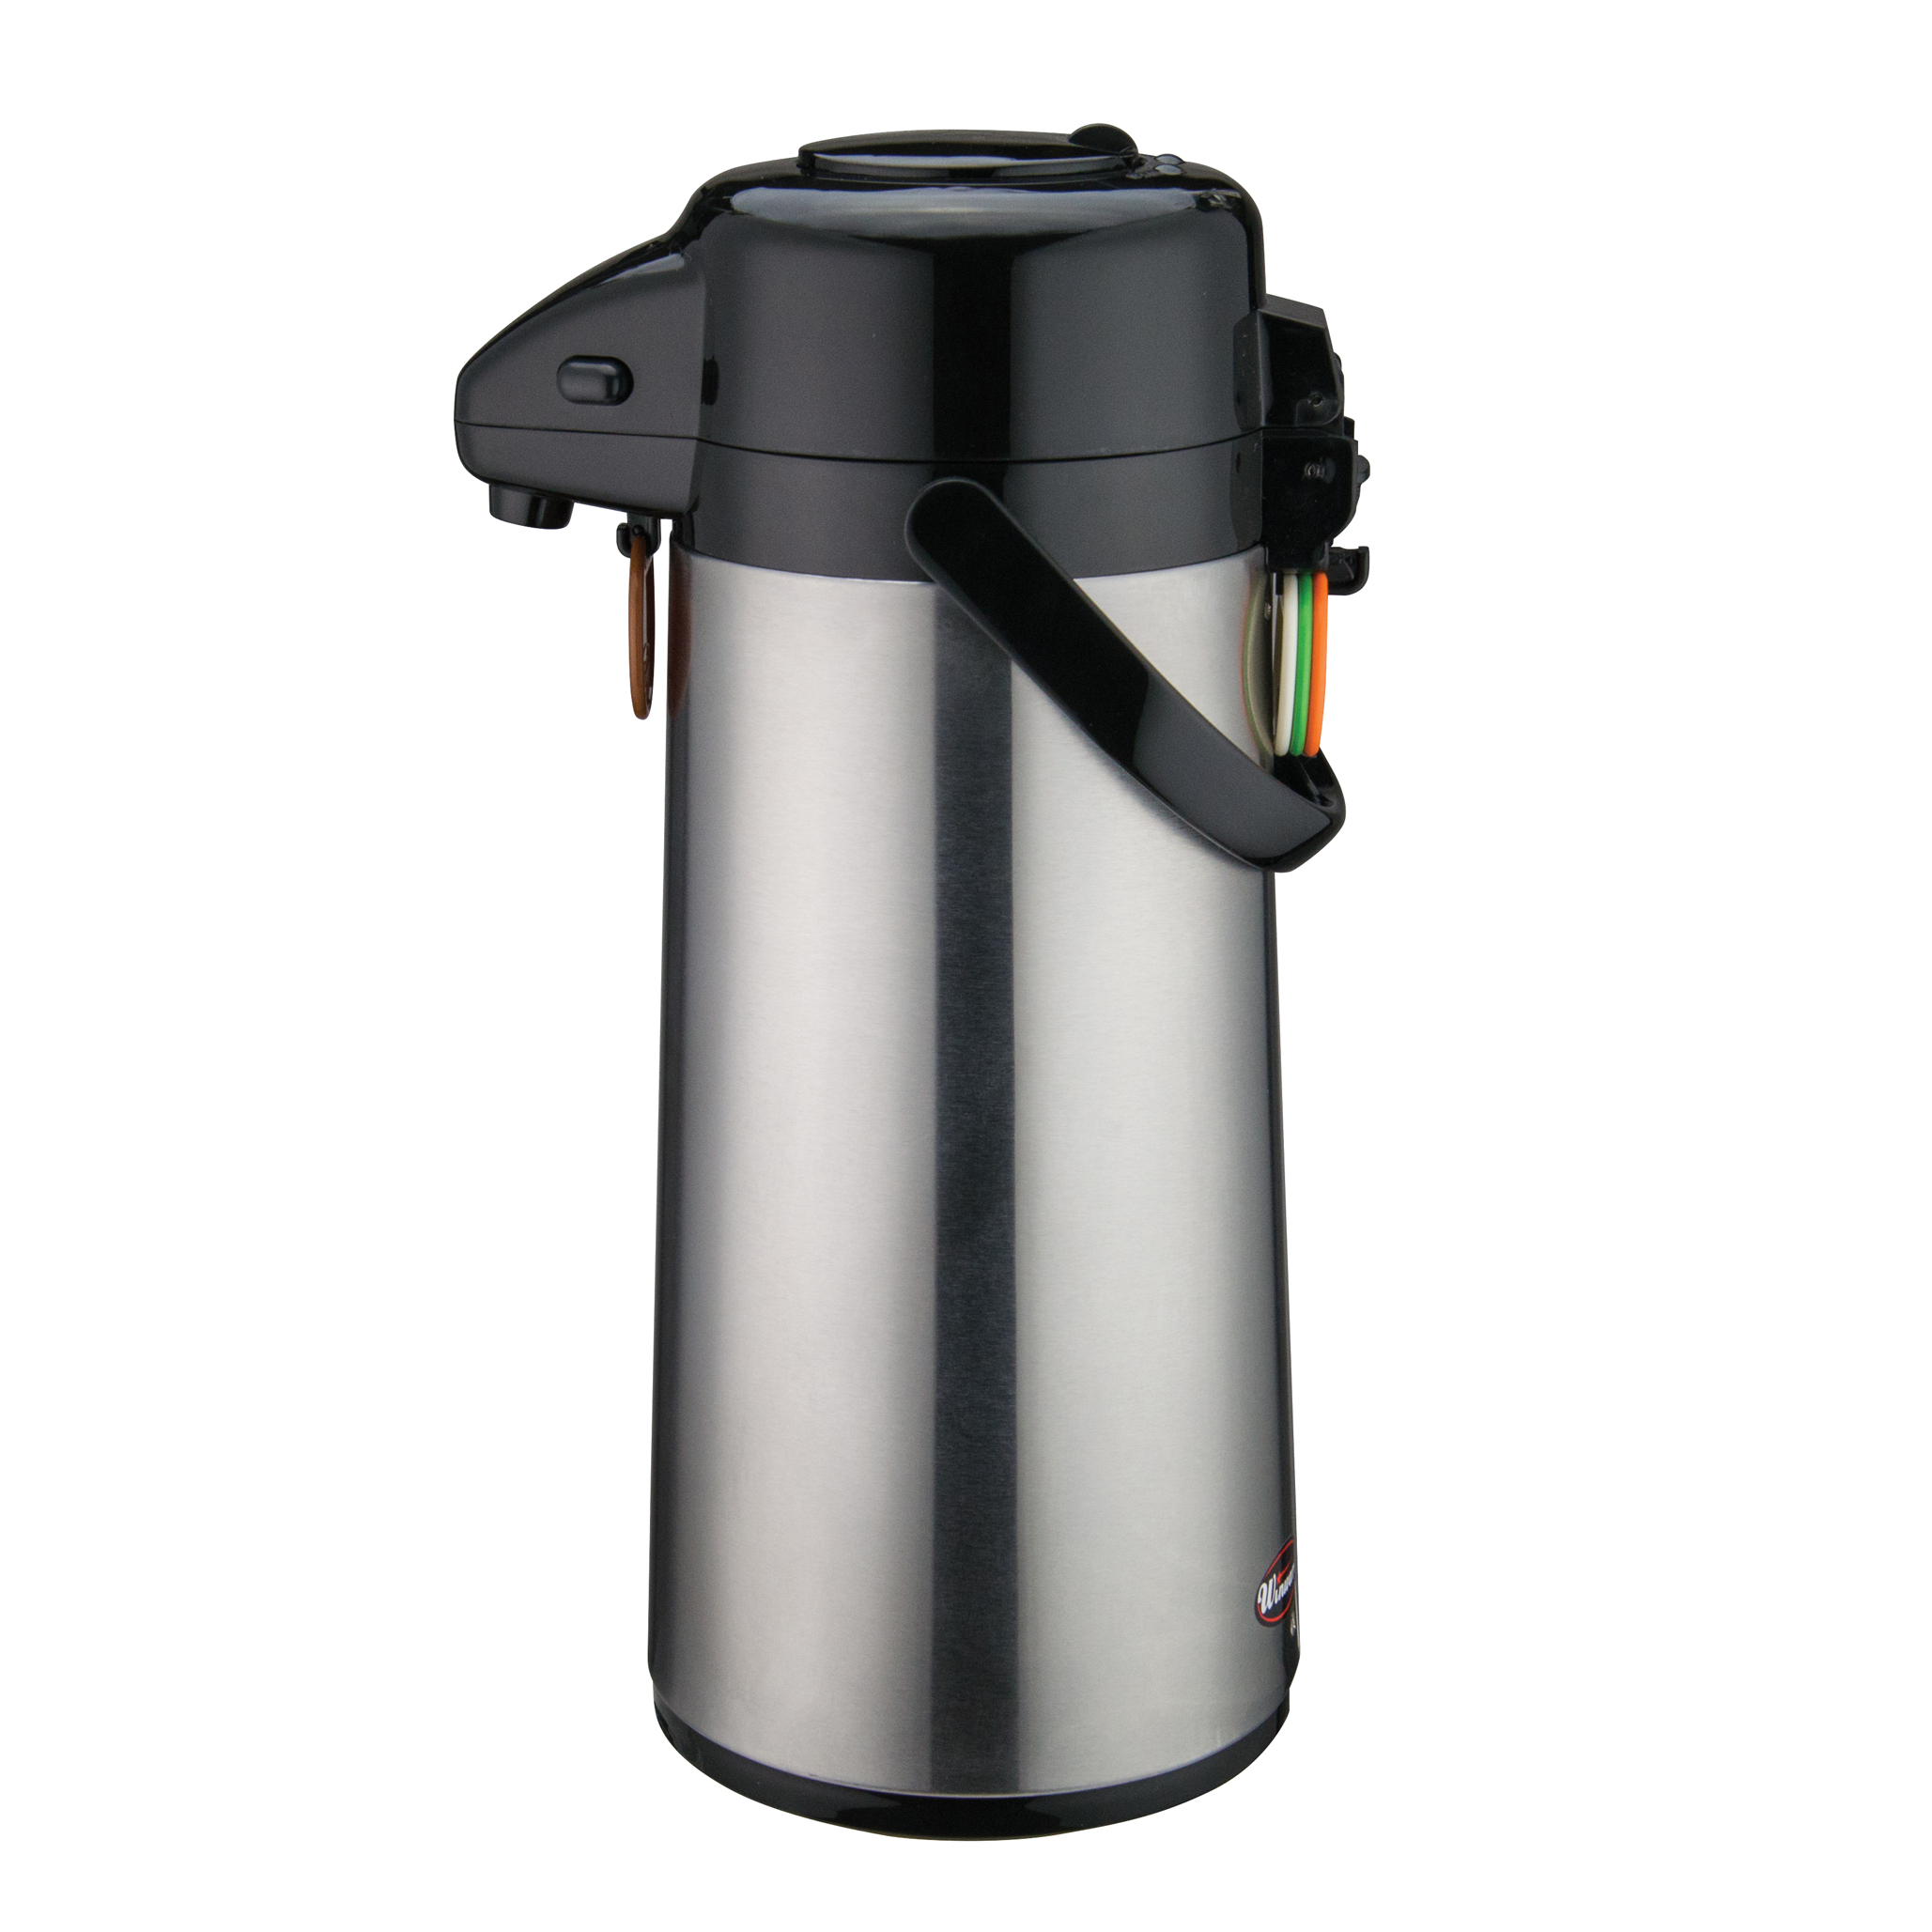 Winco AP-522 airpot